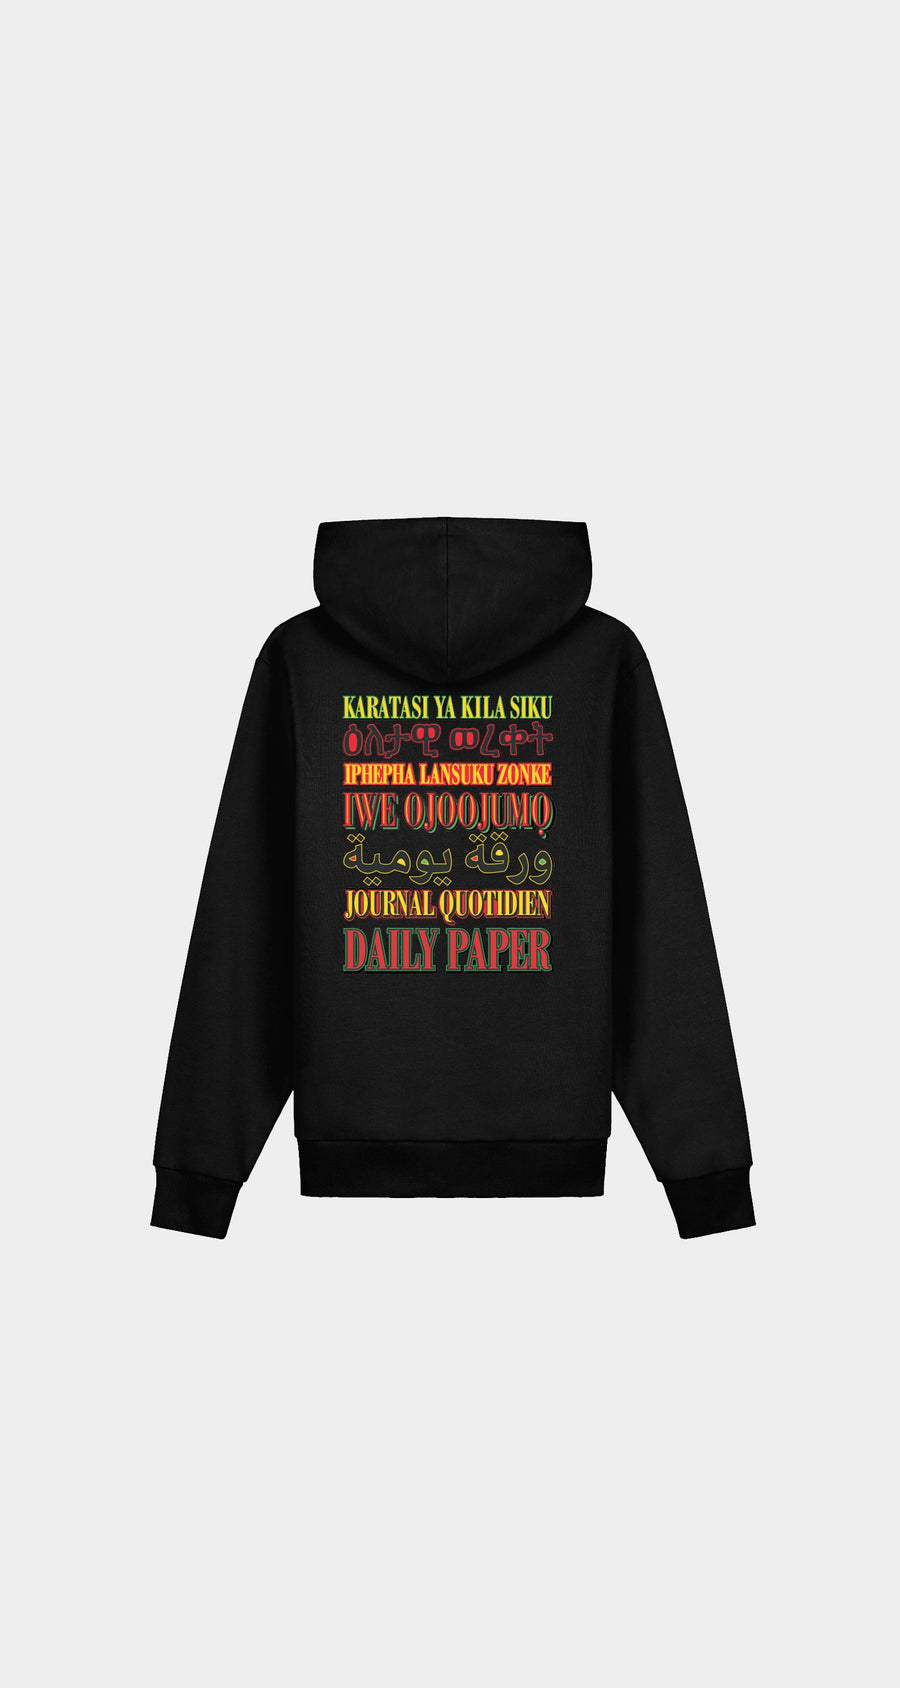 Daily Paper - Black Remulti Hoody - Men Front